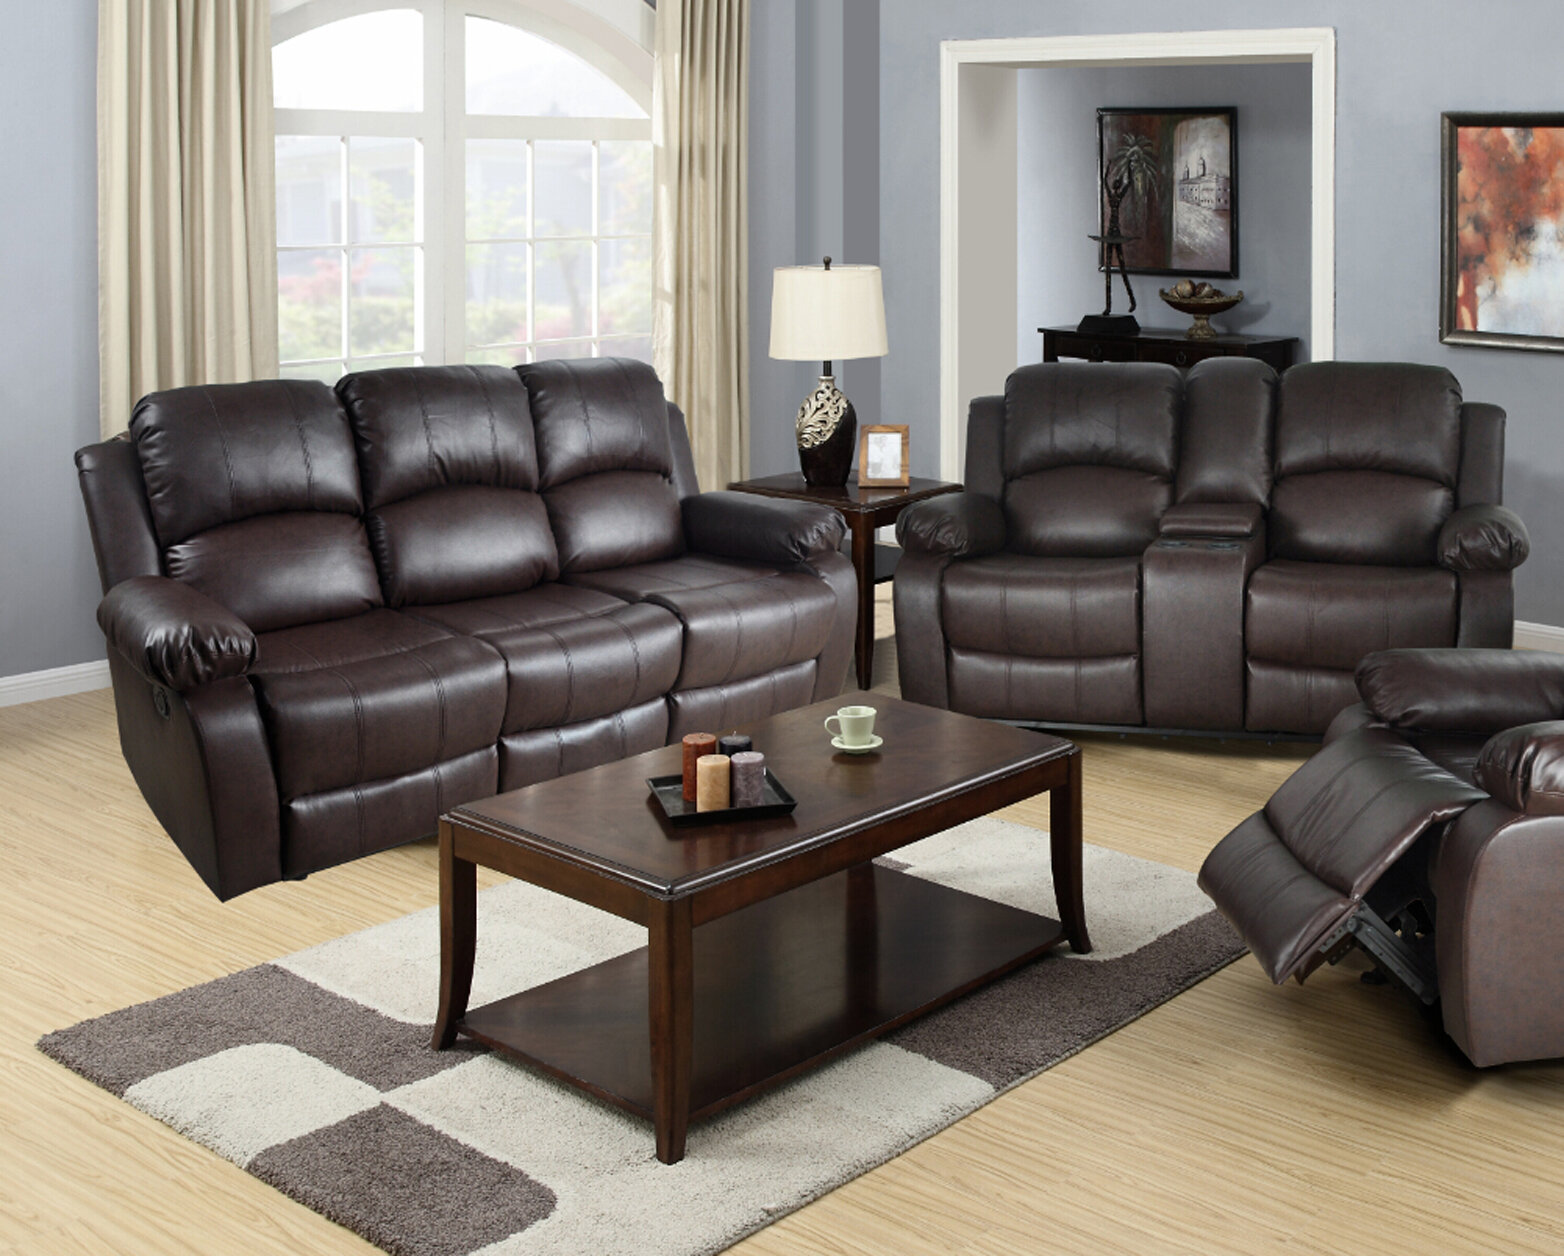 Awesome Red Barrel Studio Mayday 2 Piece Faux Leather Living Room Set U0026 Reviews |  Wayfair